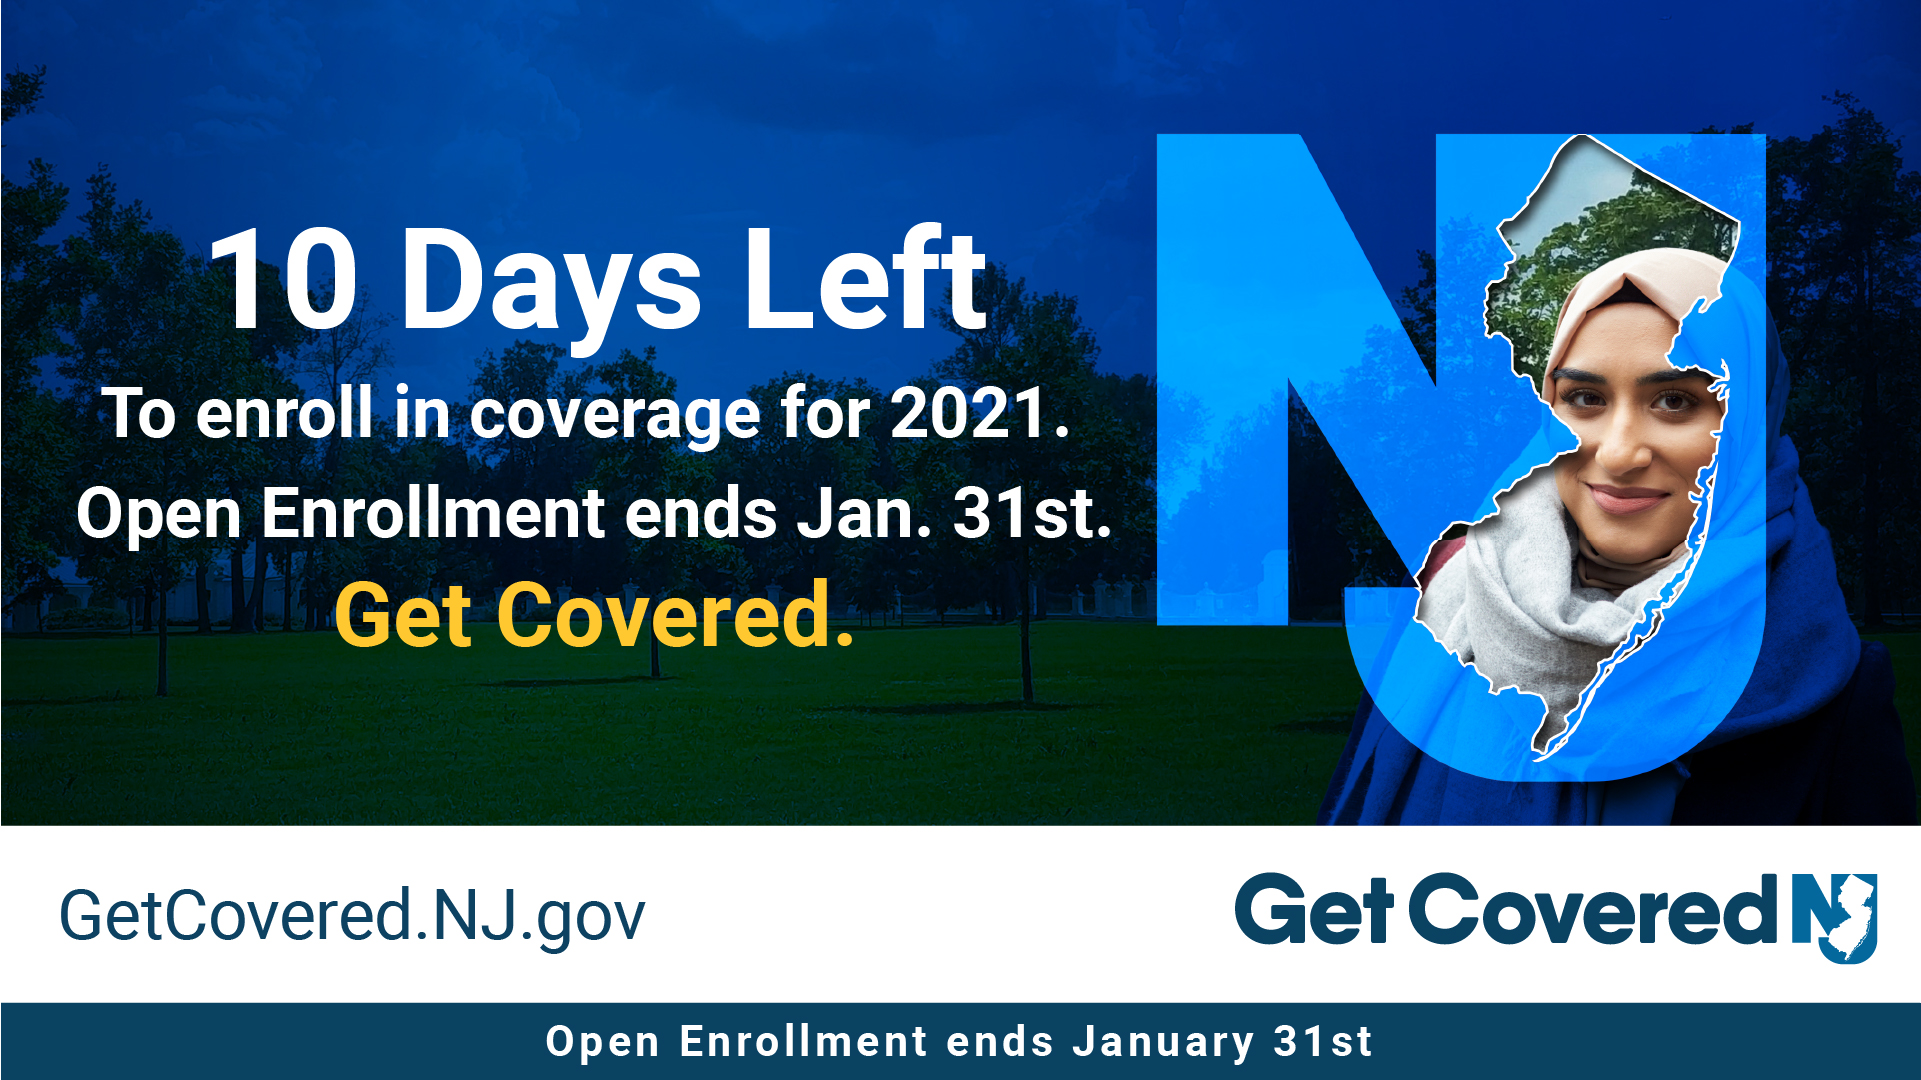 Image Contains screenshot of 10 Days left to enroll in coverage